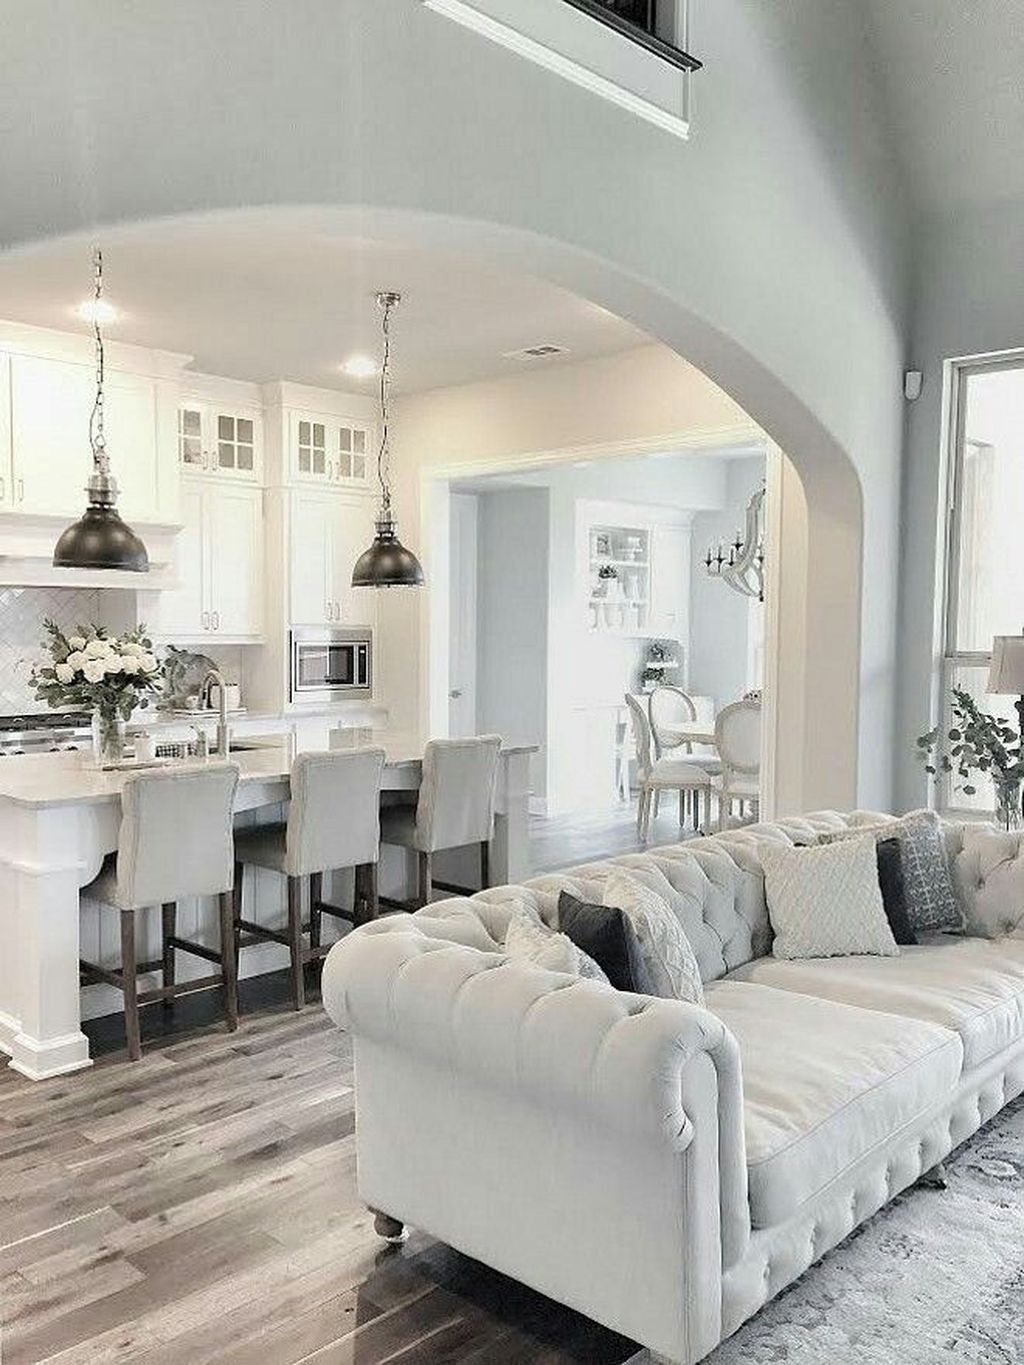 40+ Beautiful Farmhouse Kitchen Ideas To Get Traditional Accent